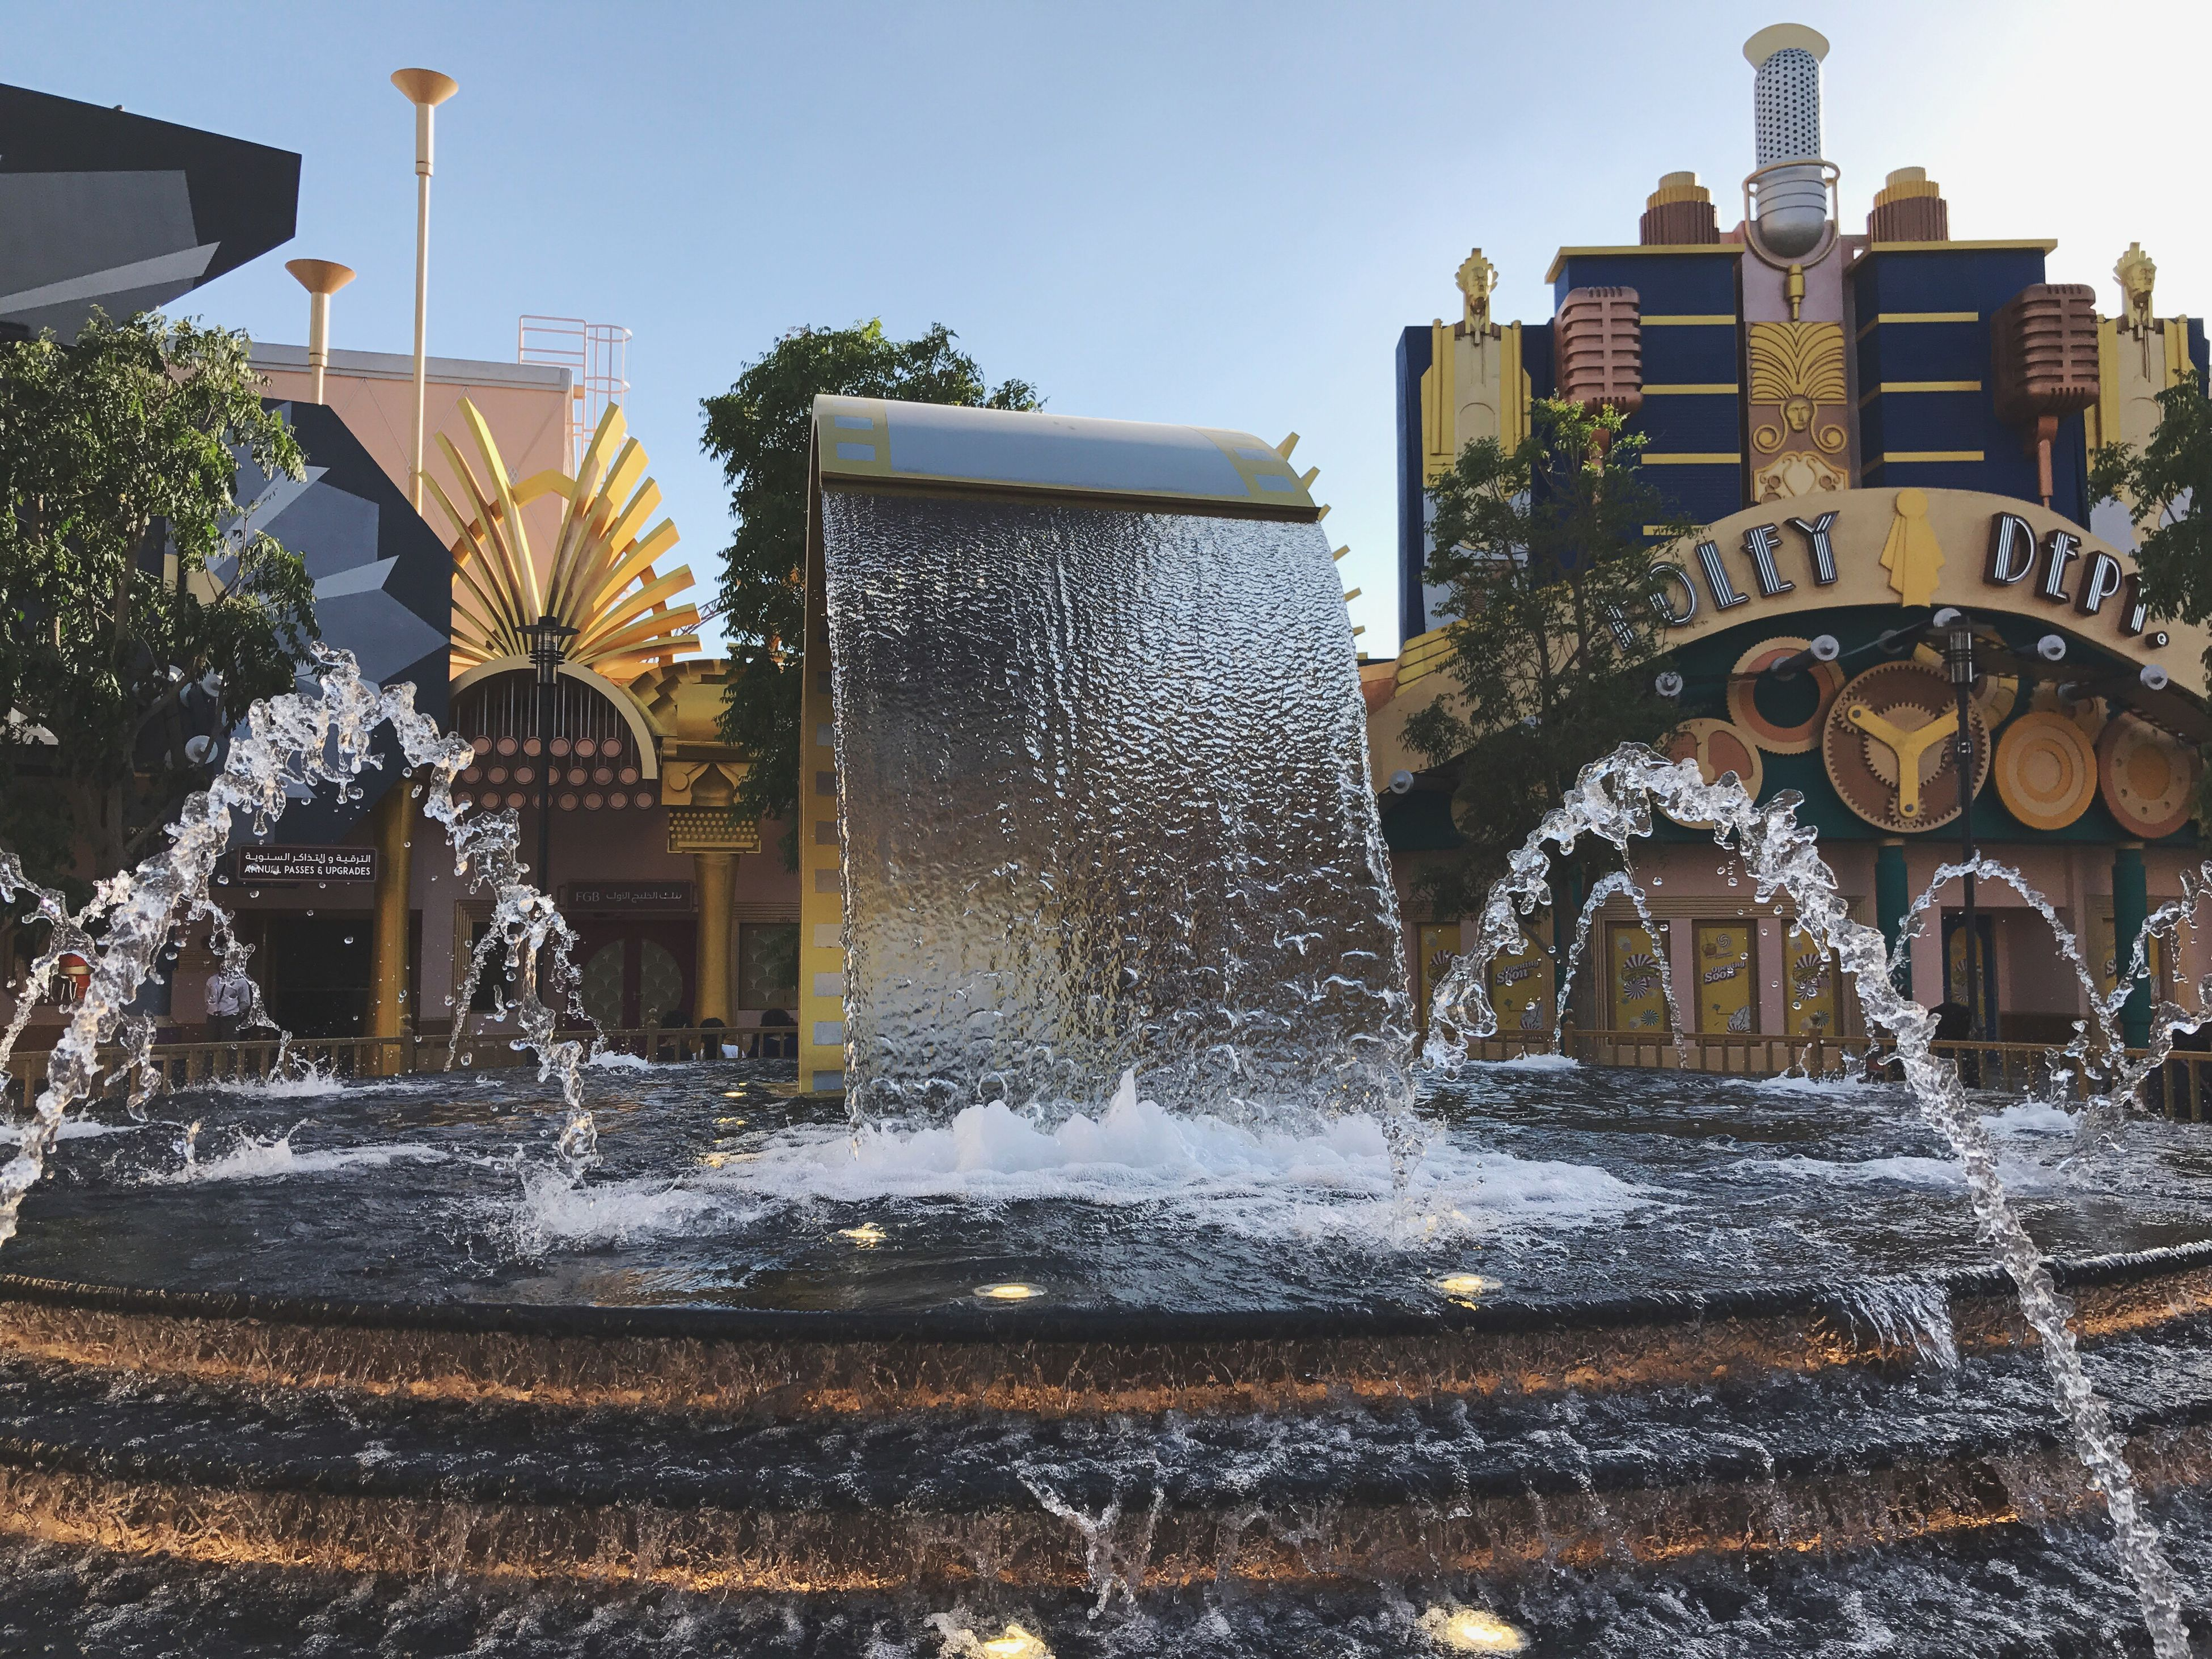 water, motion, splashing, fountain, spraying, architecture, long exposure, building exterior, outdoors, built structure, no people, waterfall, blurred motion, day, drinking fountain, nature, city, sky